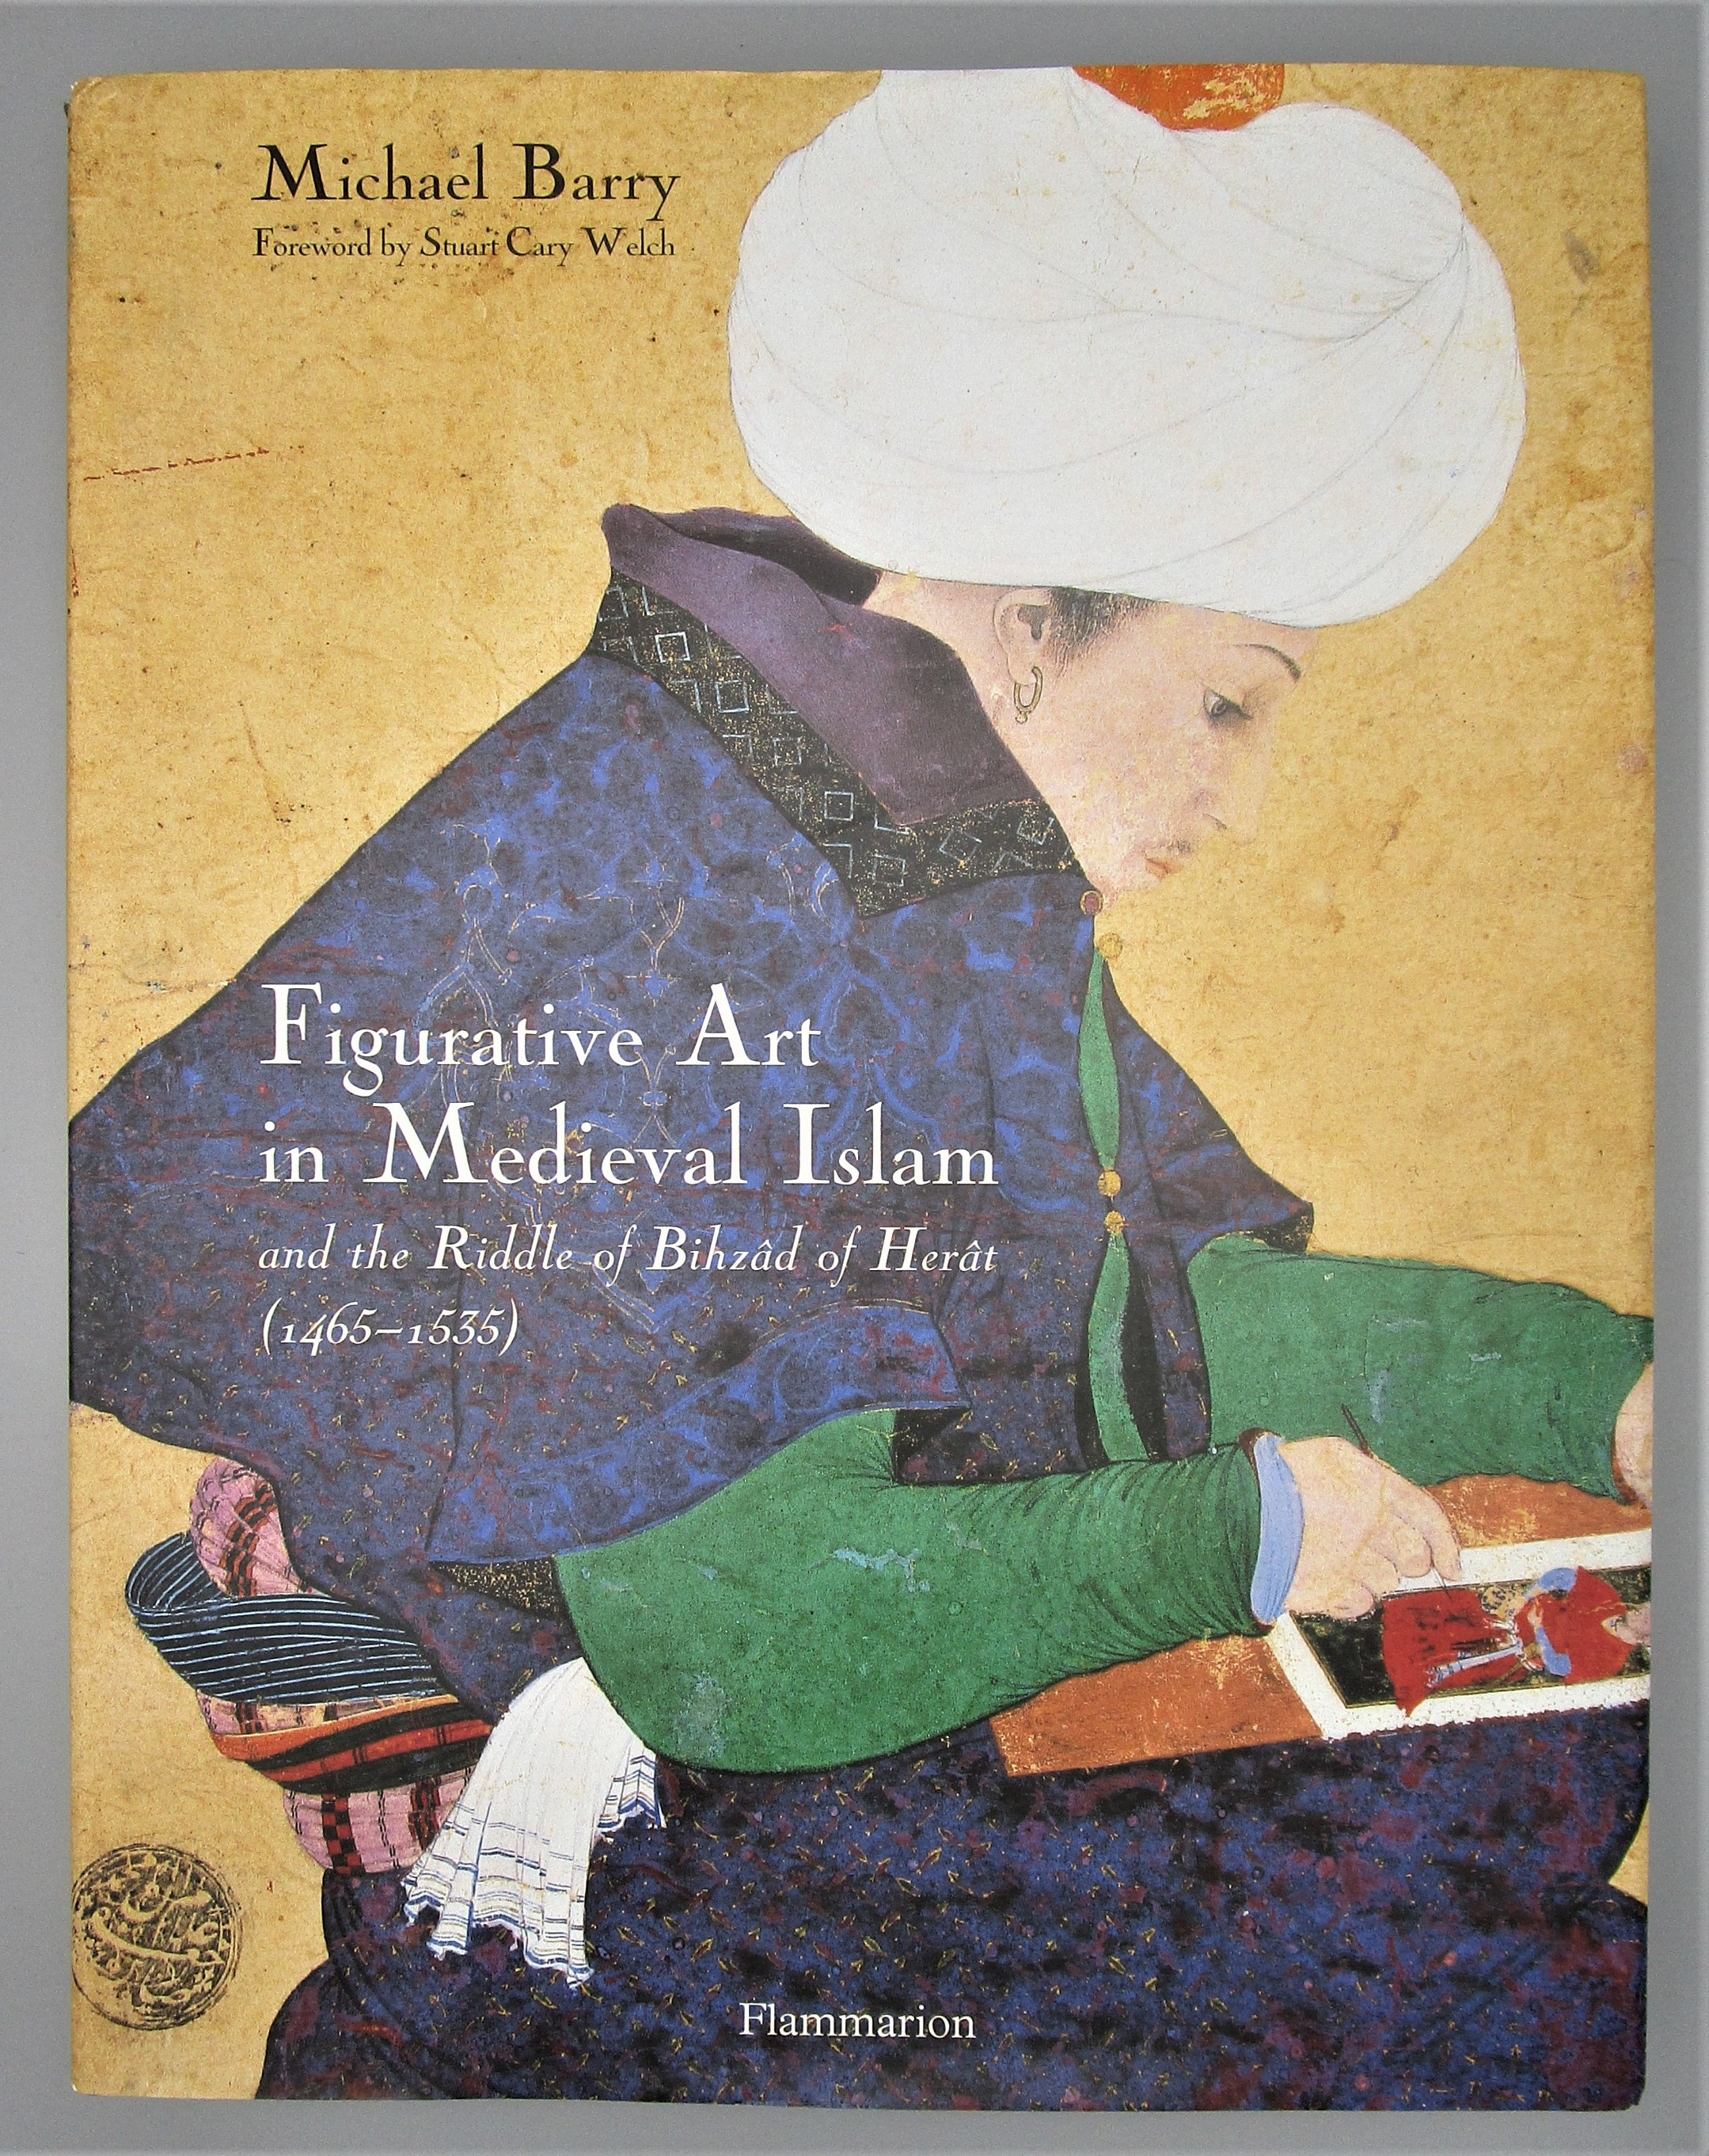 FIGURATIVE ART IN MEDIEVAL ISLAM, by Michael Barry - 2004 [Signed]